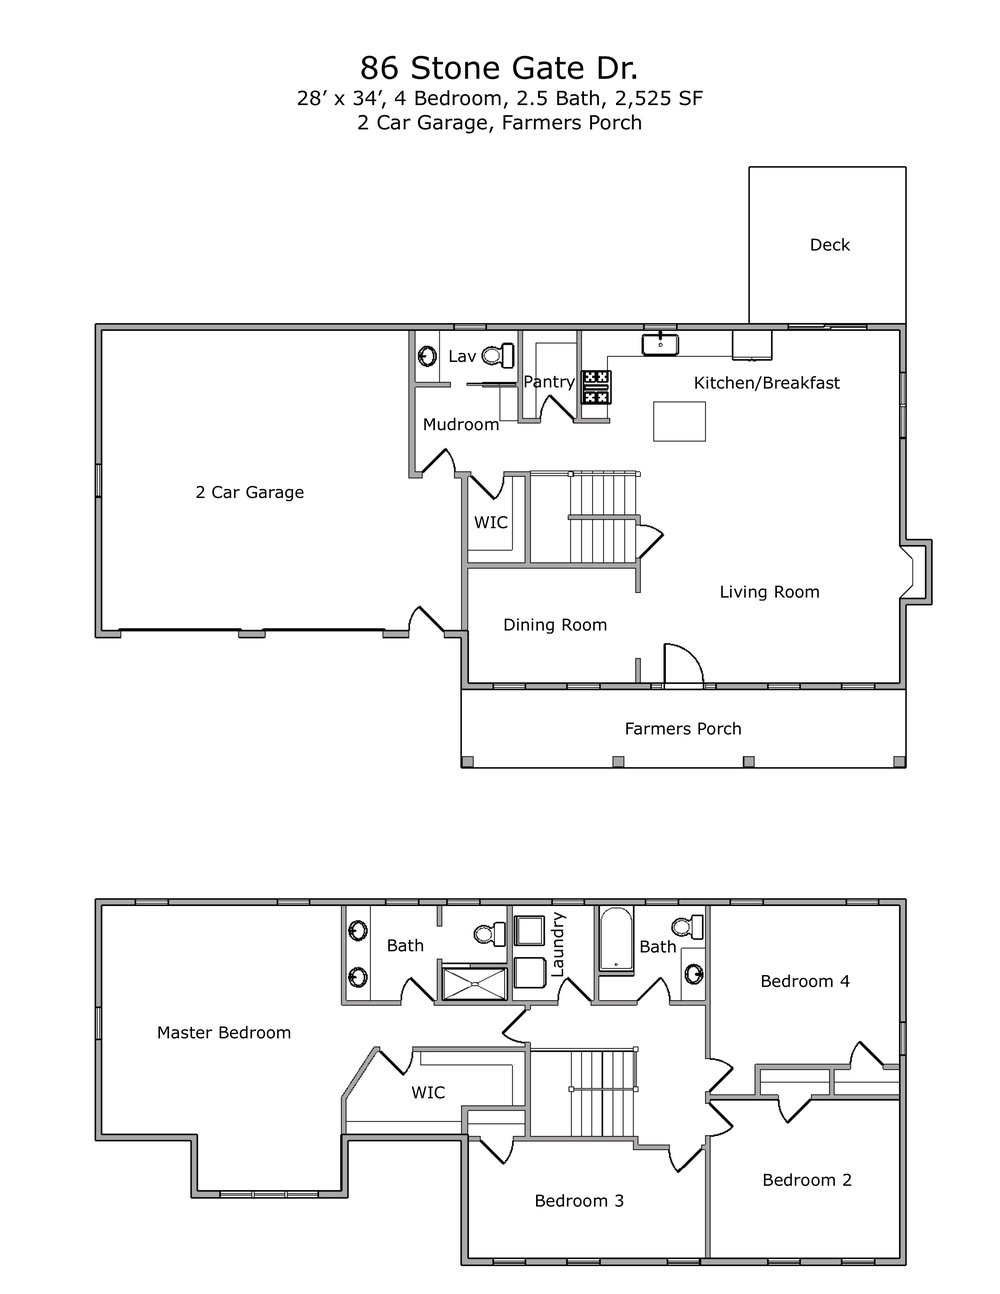 2019-01-11 - 86 sgd layout floor plan.jpg